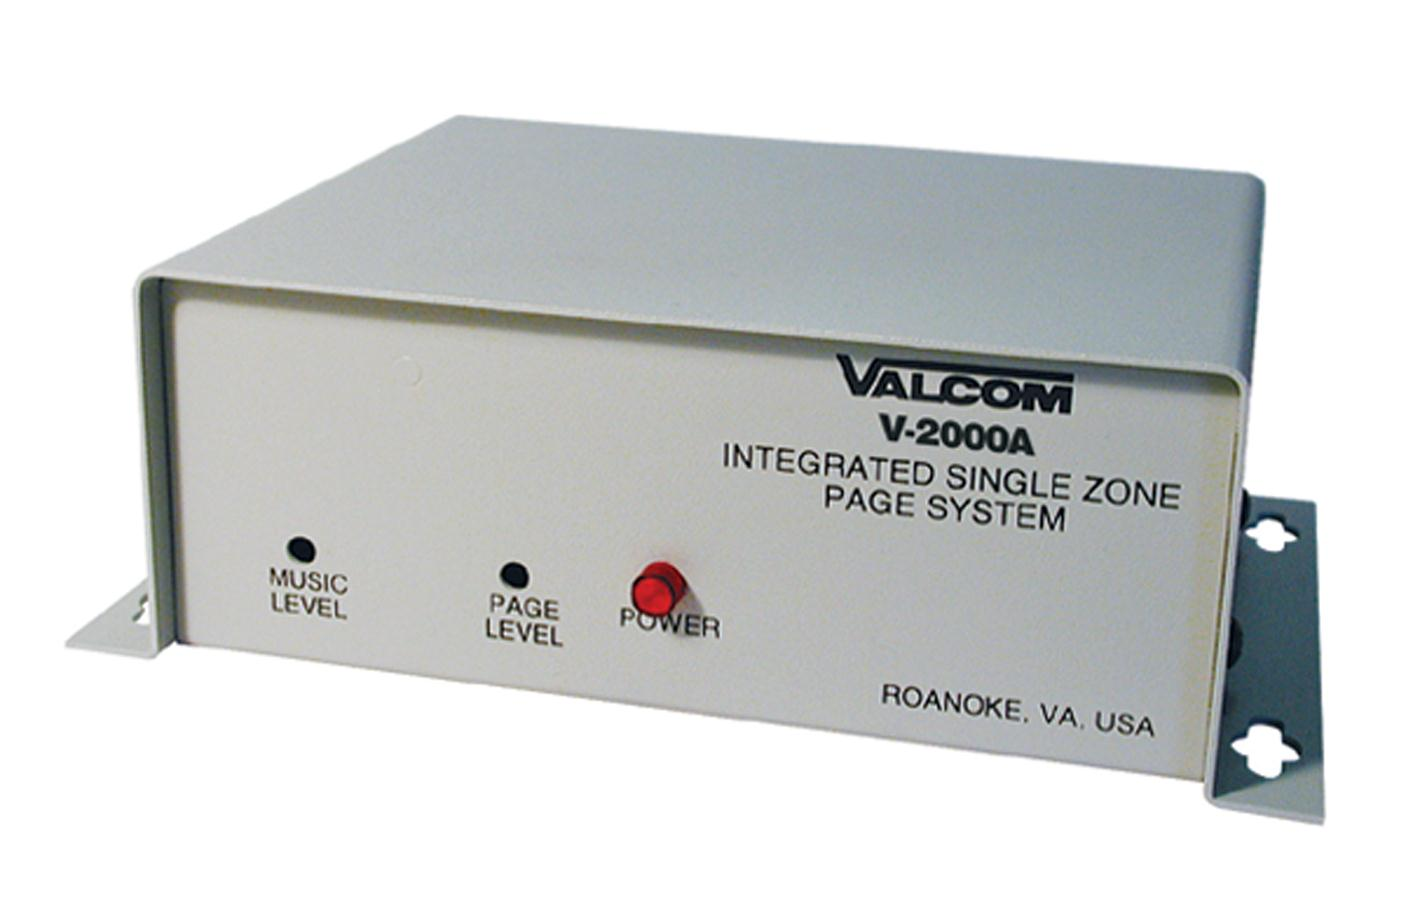 VC V 2000Aimage1_orig teledynamics product details vc v 2000a  at bayanpartner.co